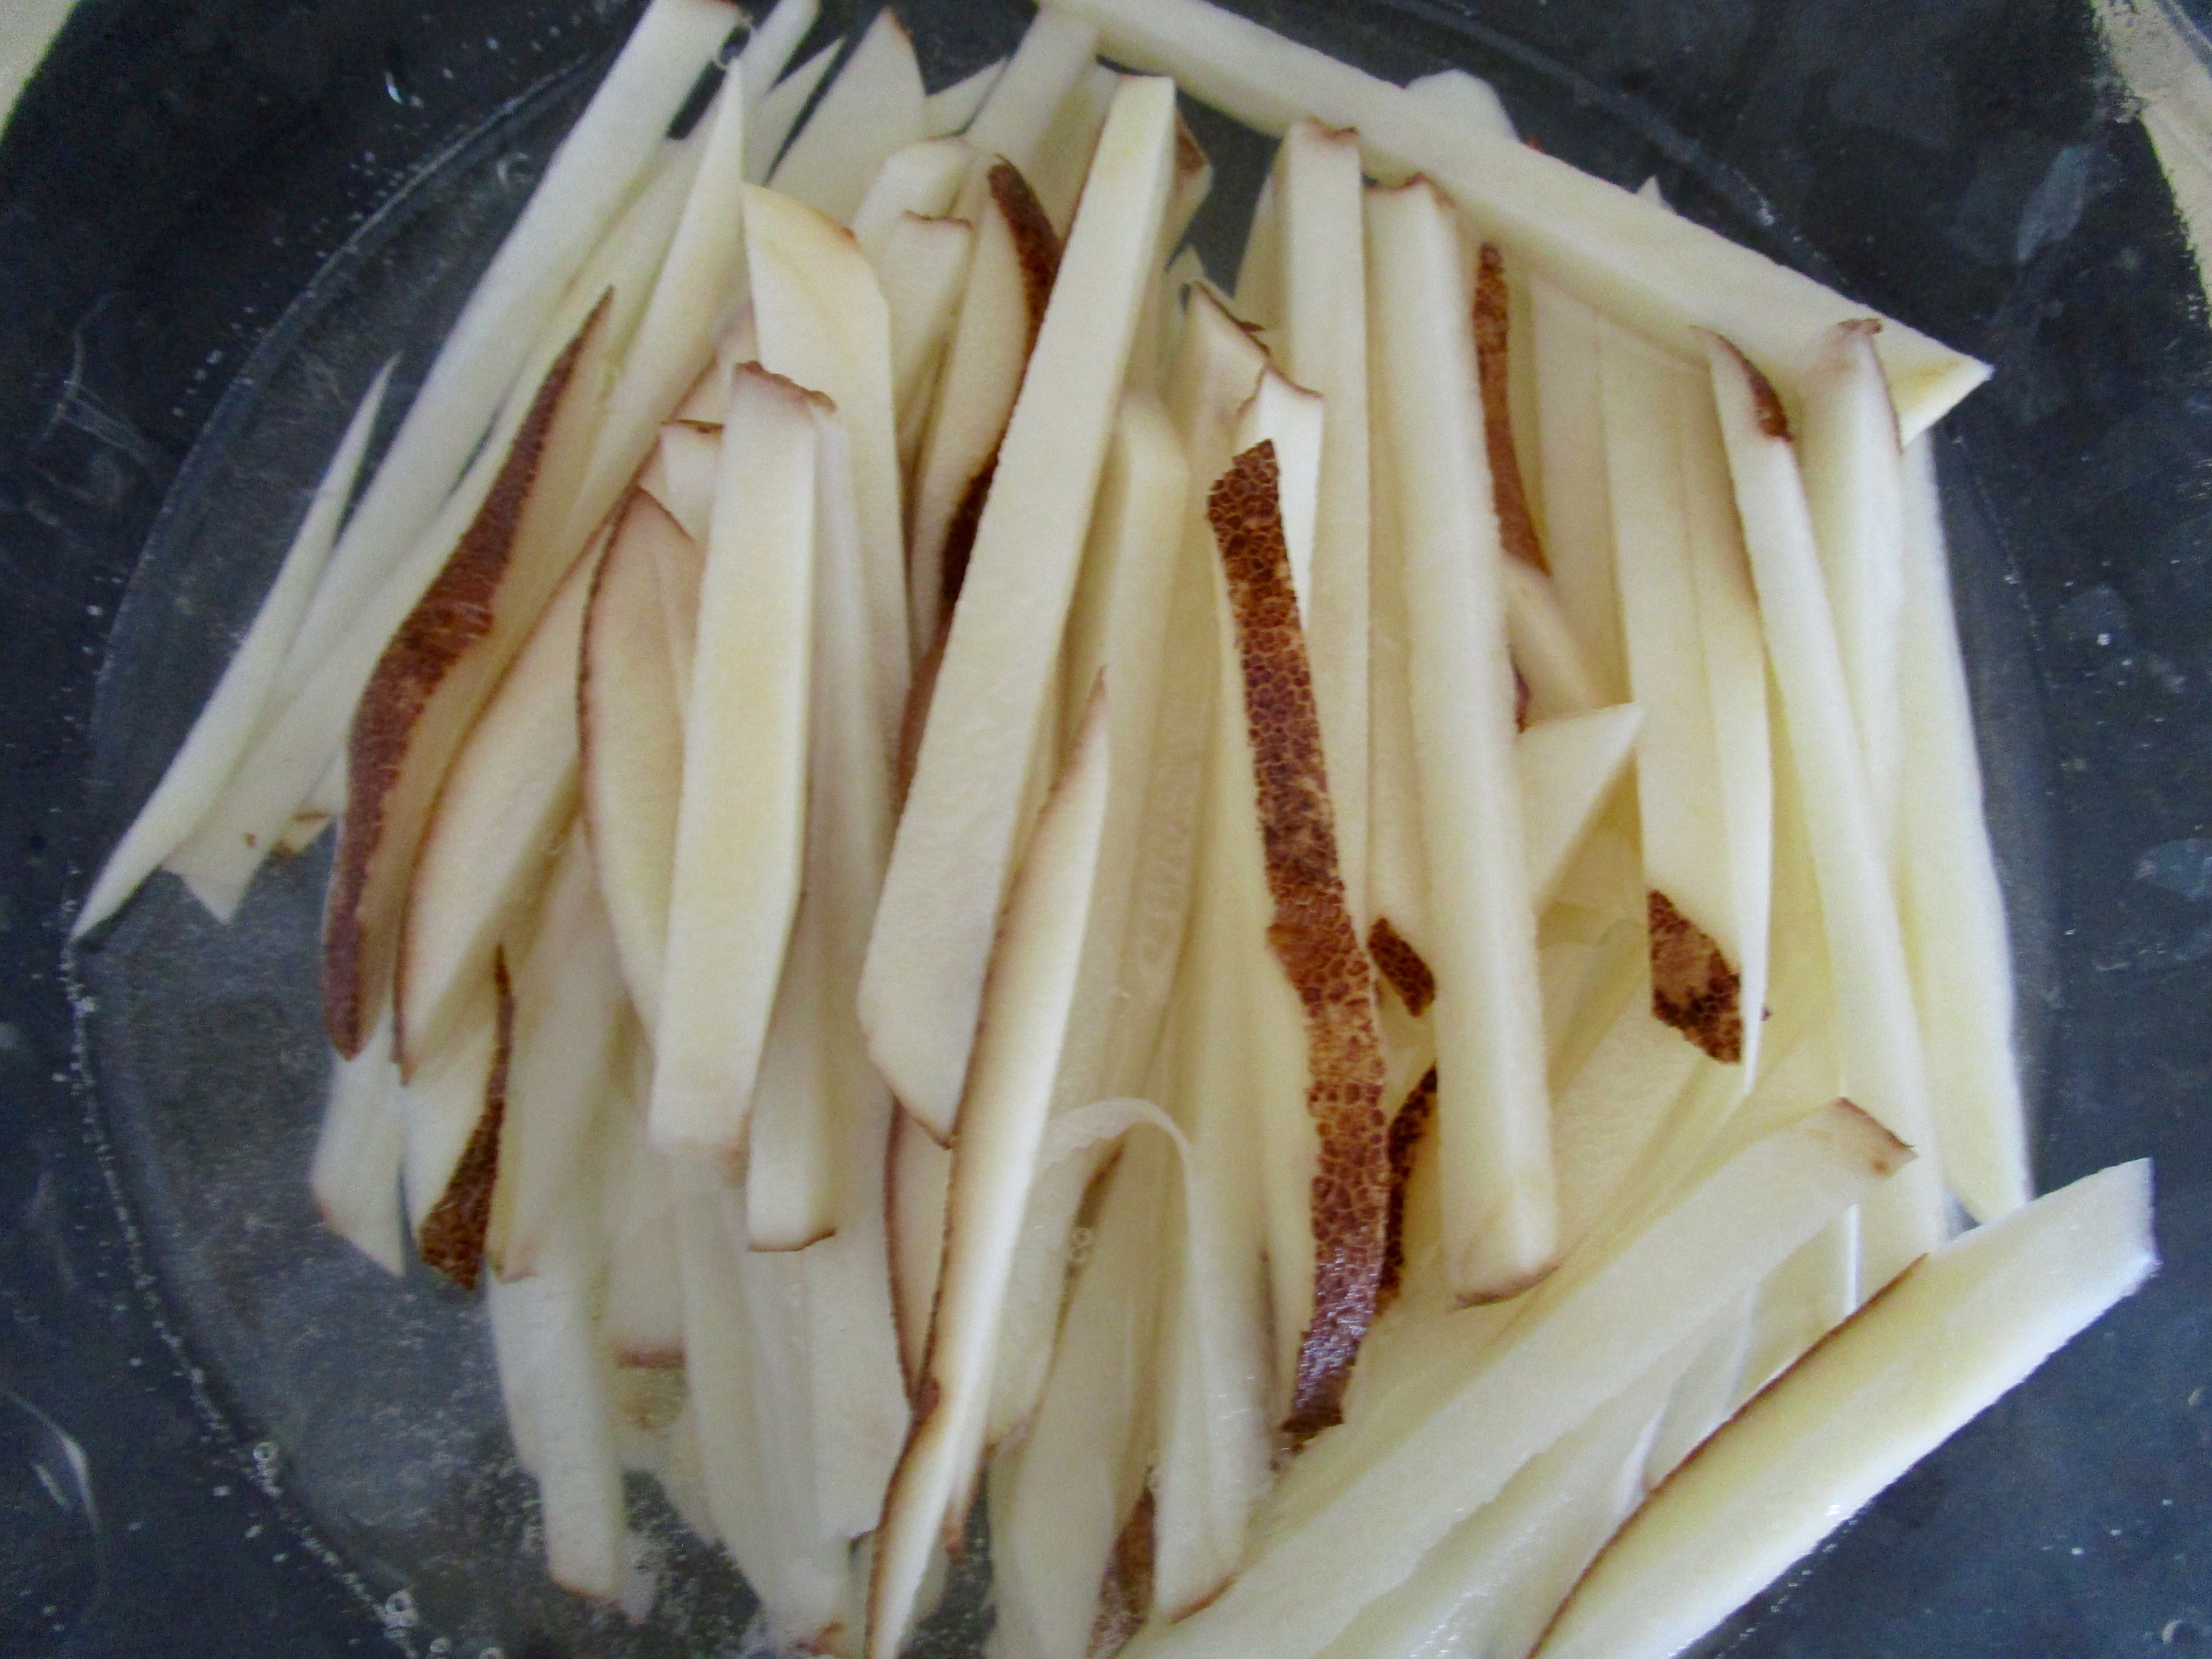 After cutting potatoes into 1/3 inch slices, cut each slice into  1/3-inch wide strips.